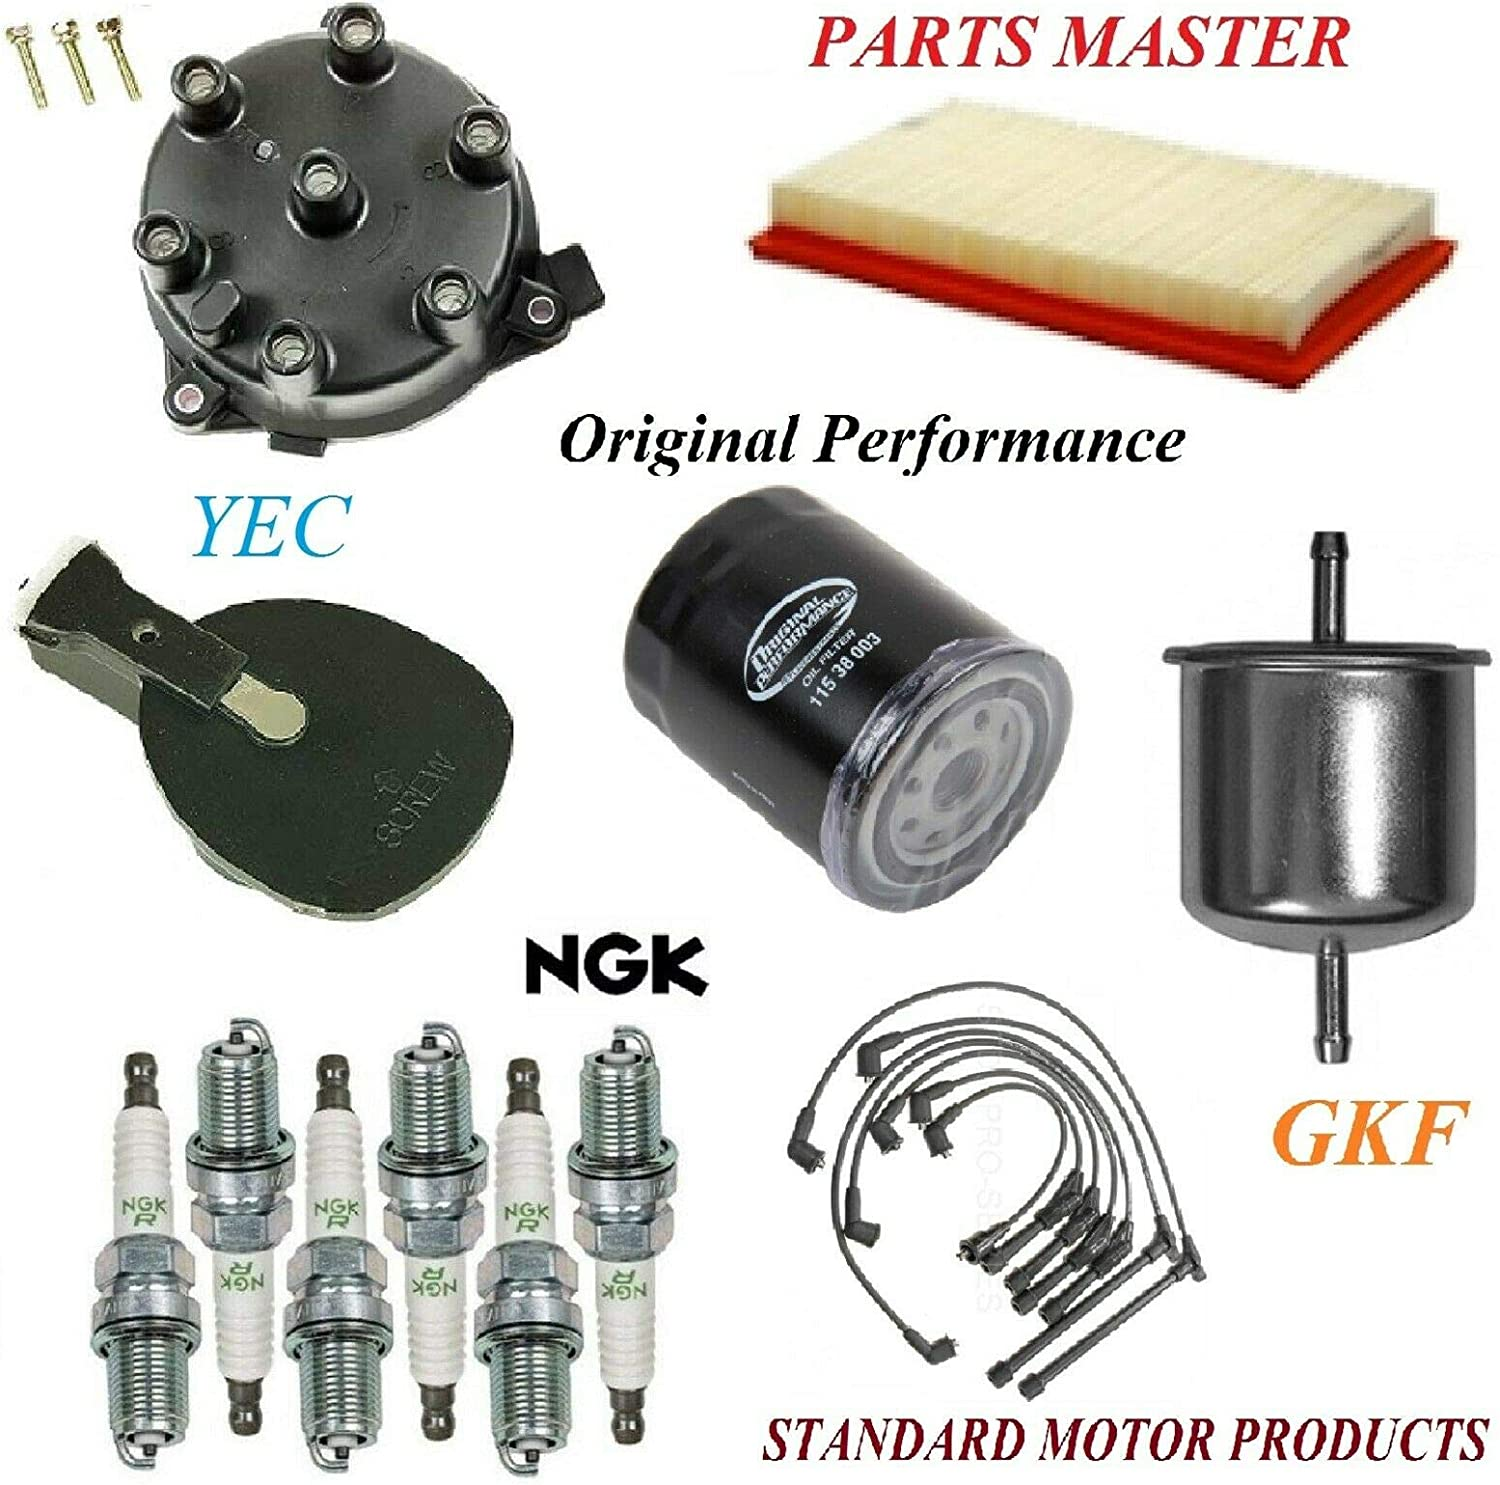 8USAUTO Tune Up OFFicial store Kit Air Oil Fuel Wire Pl Spark Filters Rotor Cap New products, world's highest quality popular!